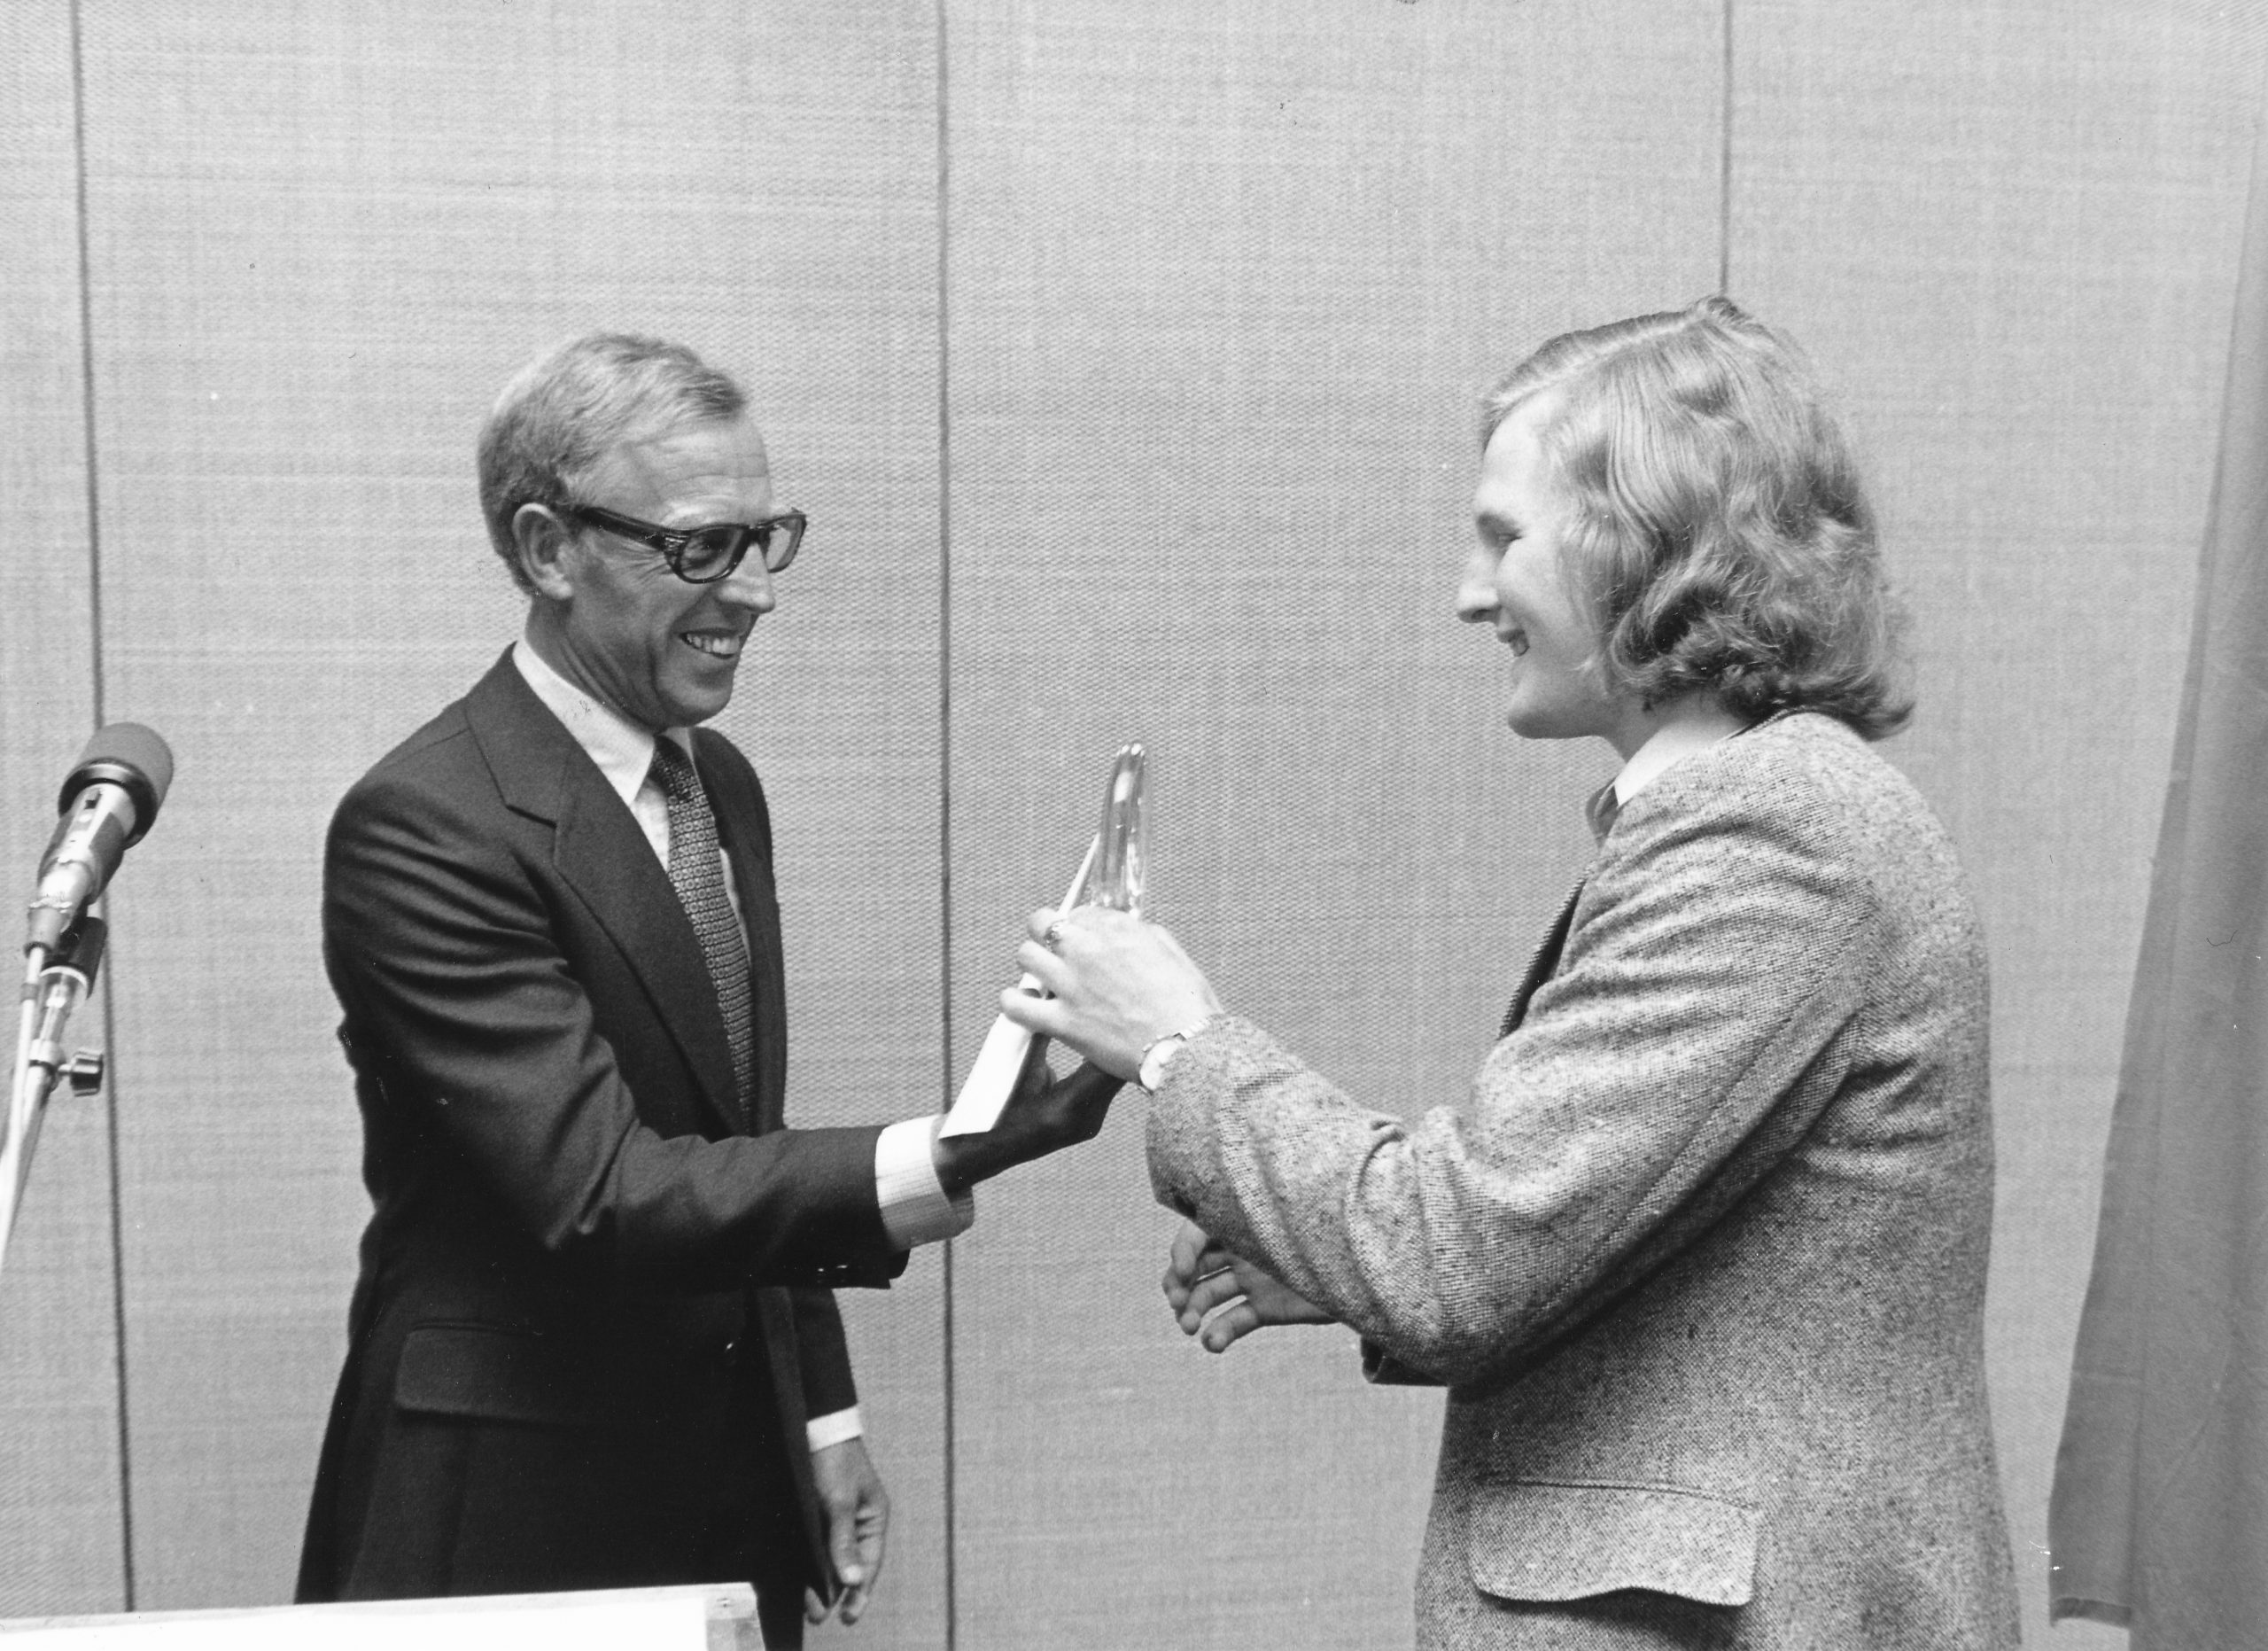 Tony being presented with the trophy in the photograph below